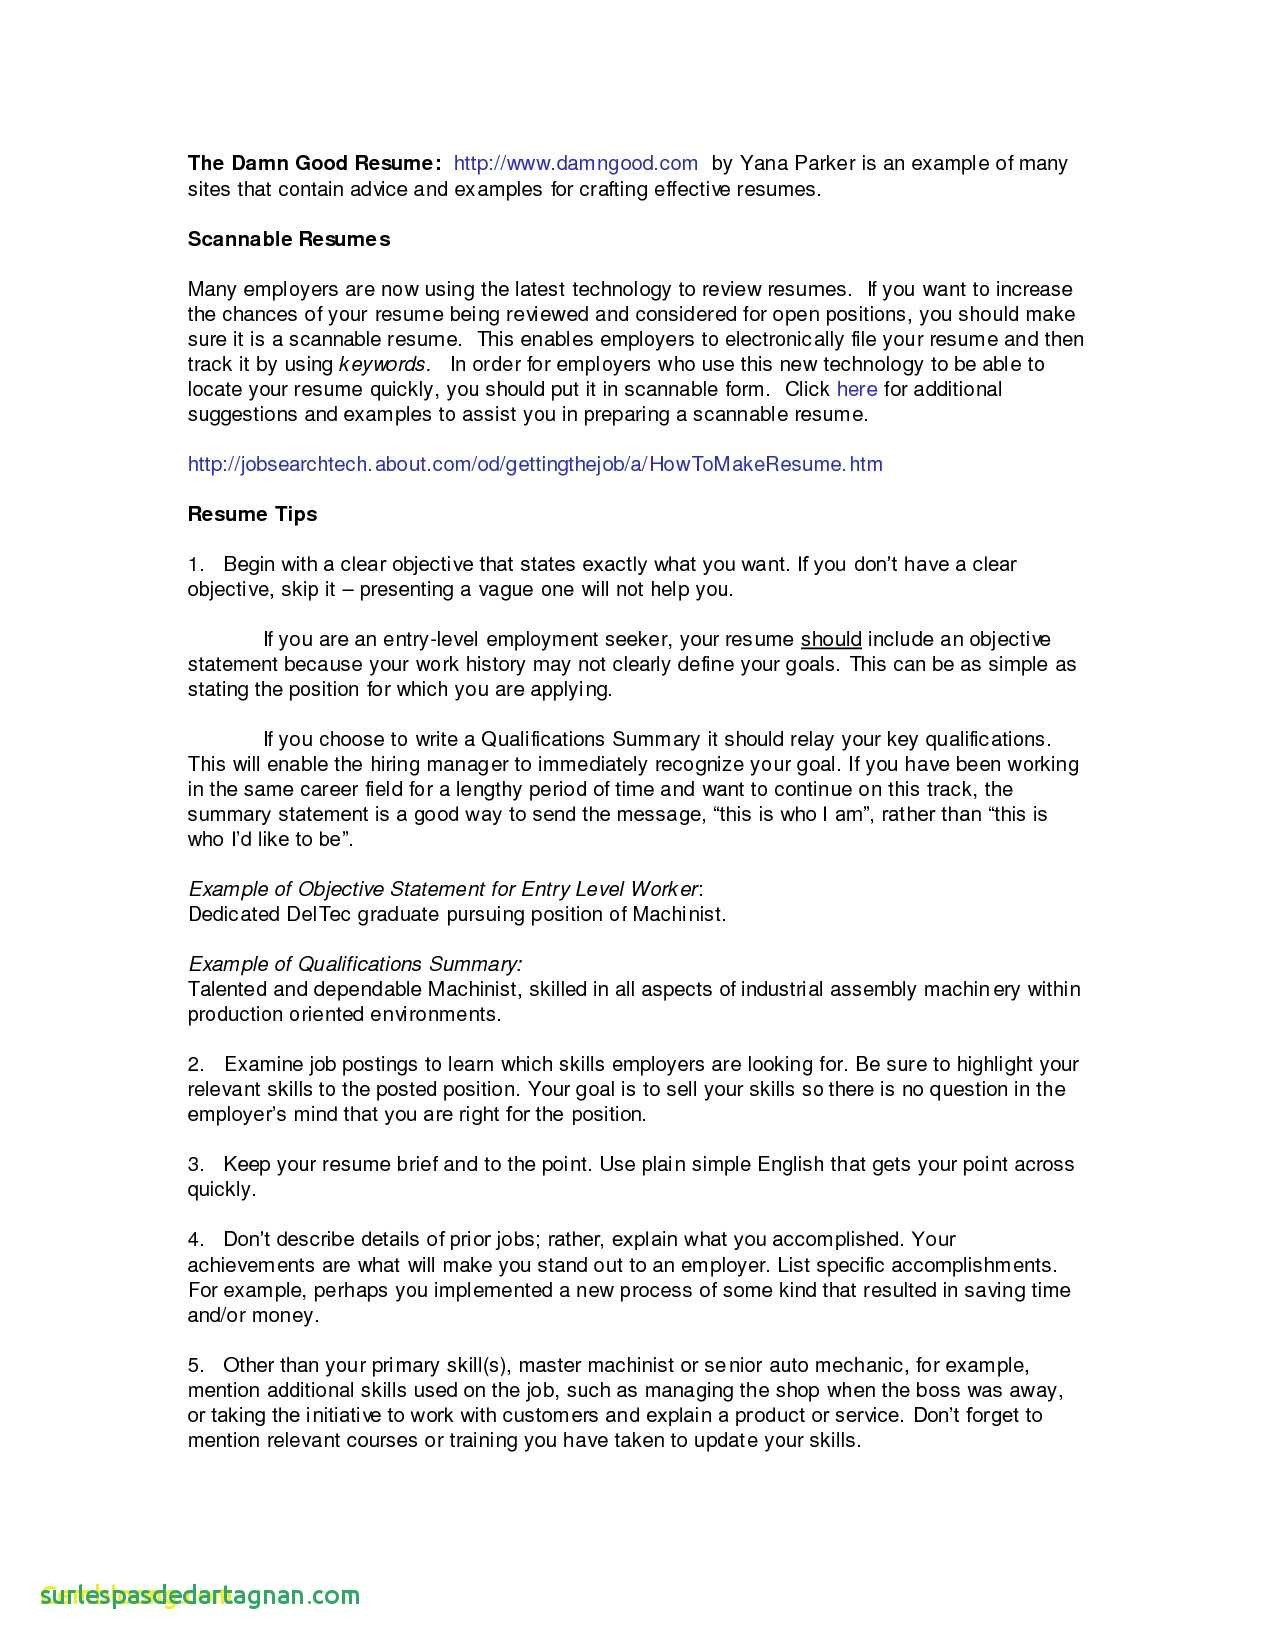 Laborer Job Description for Resume - Laborer Job Description for Resume